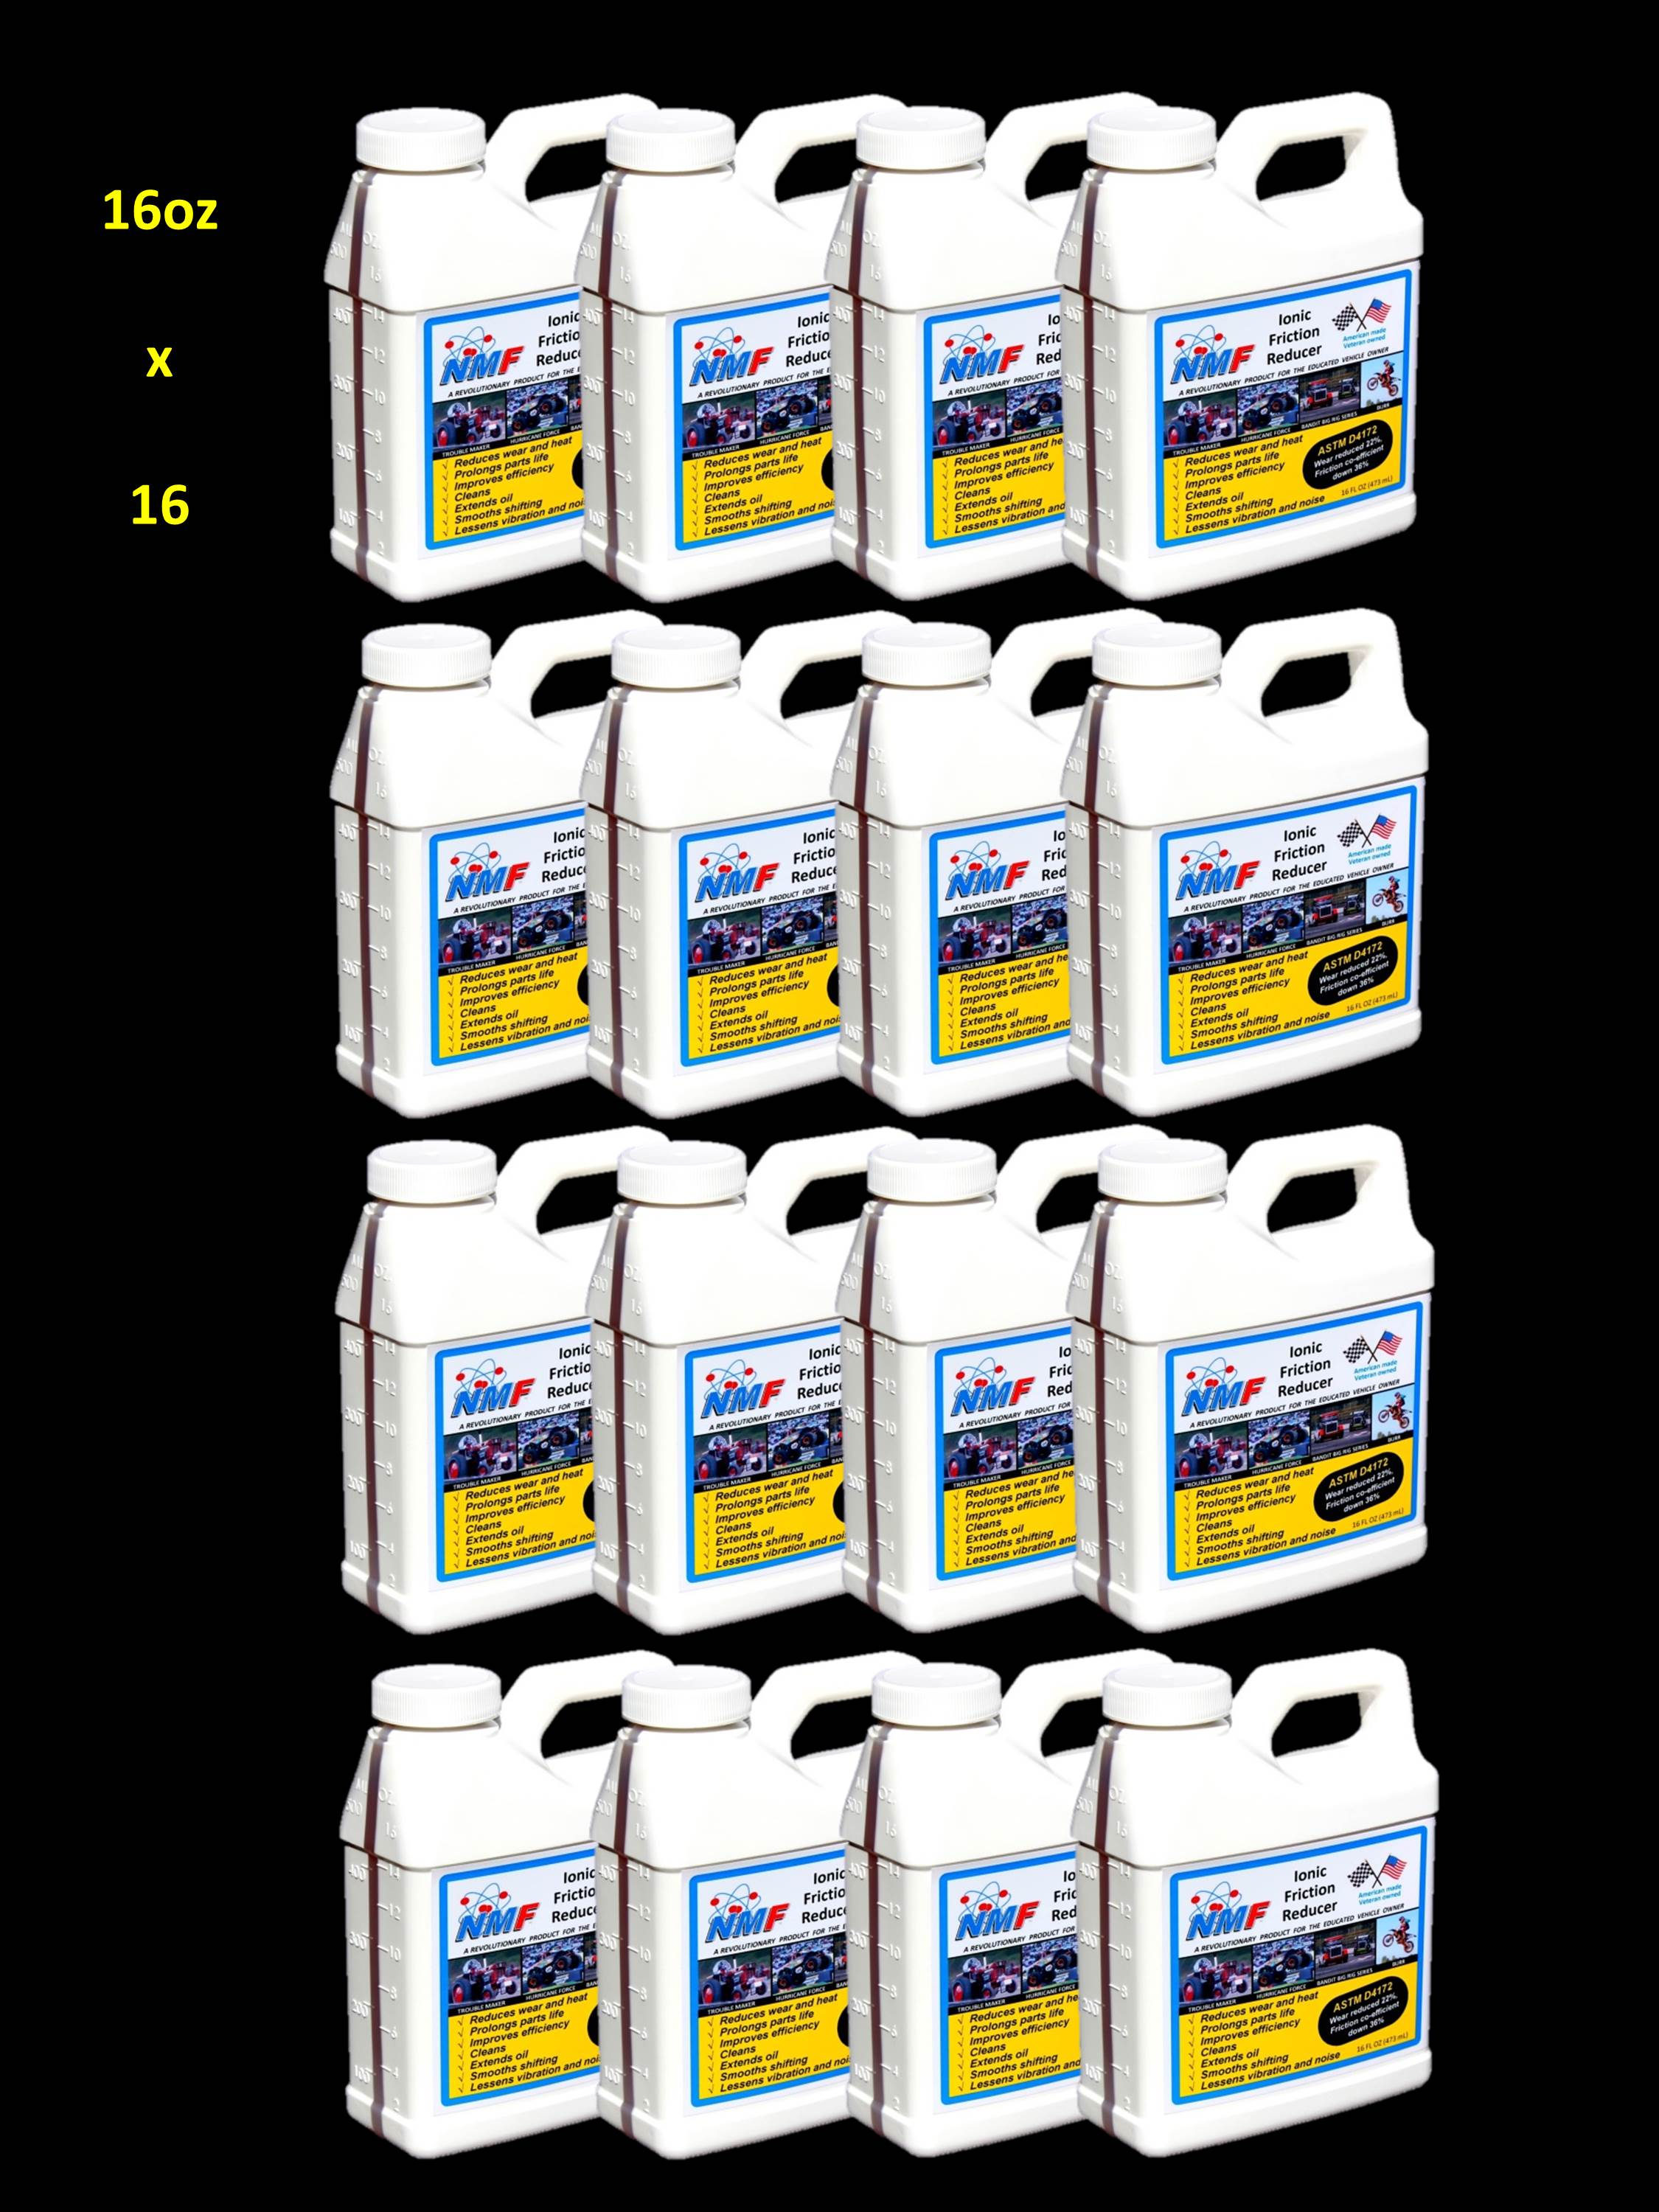 Dealer Case, 16 oz, large (16 bottles)